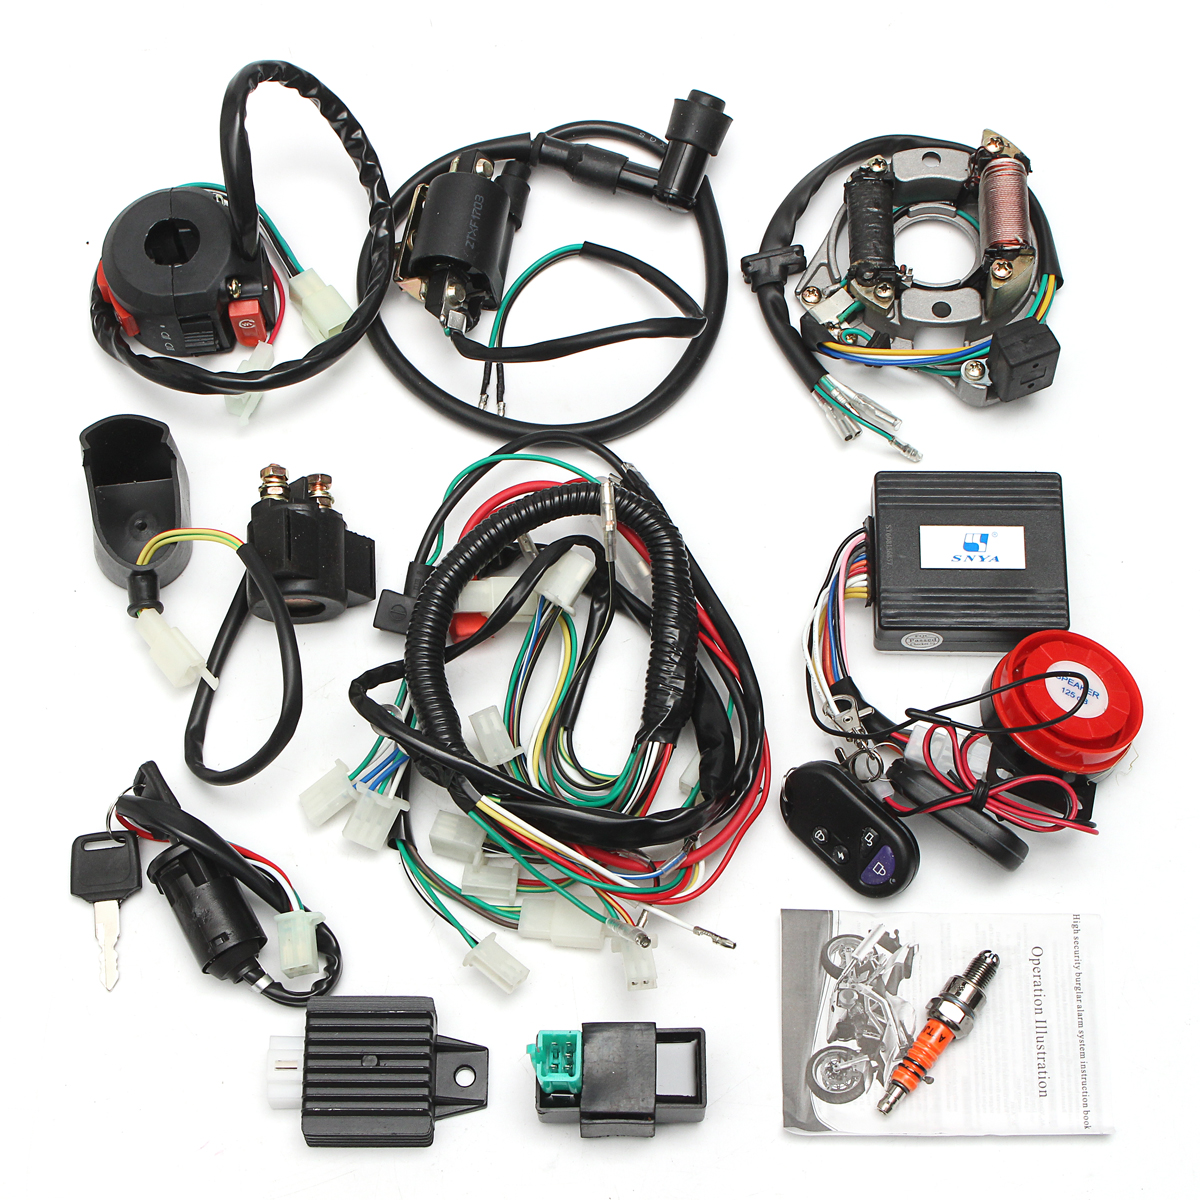 hight resolution of two holes full electrics wiring harness coil cdi 50cc 70cc 110cc 110 atv wiring harness key dash 110 atv wiring harness